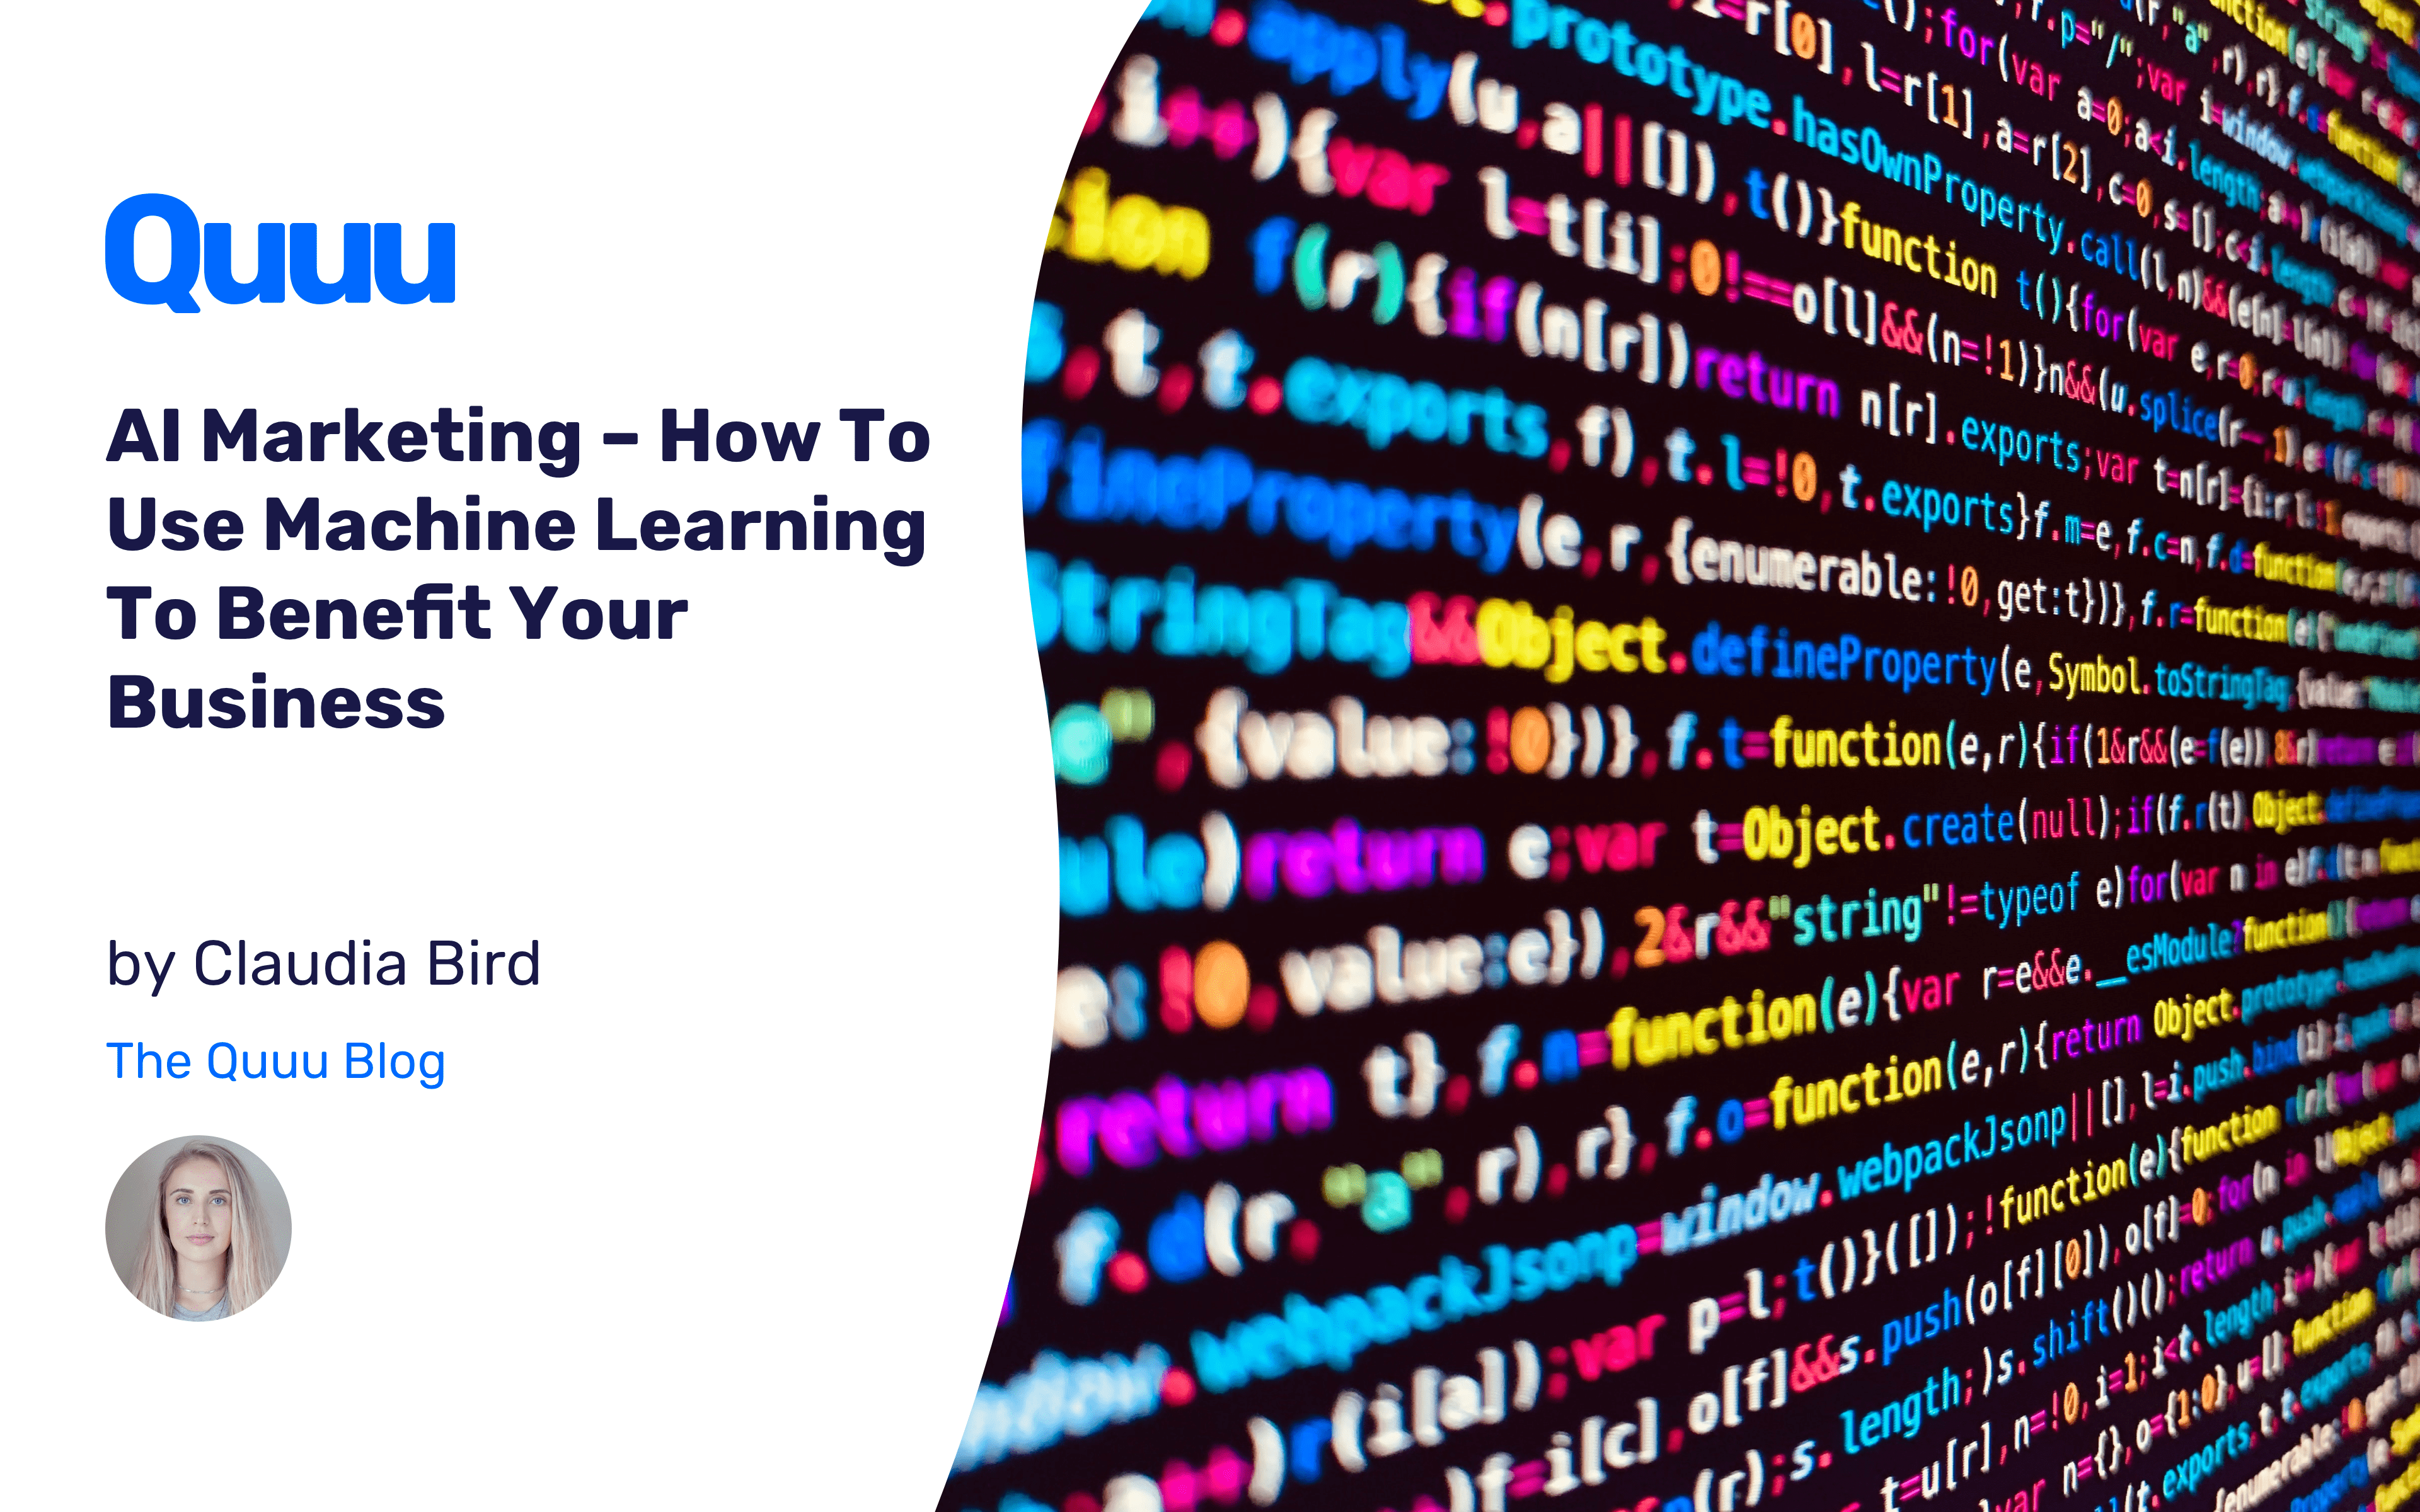 AI Marketing – How To Use Machine Learning To Benefit Your Business